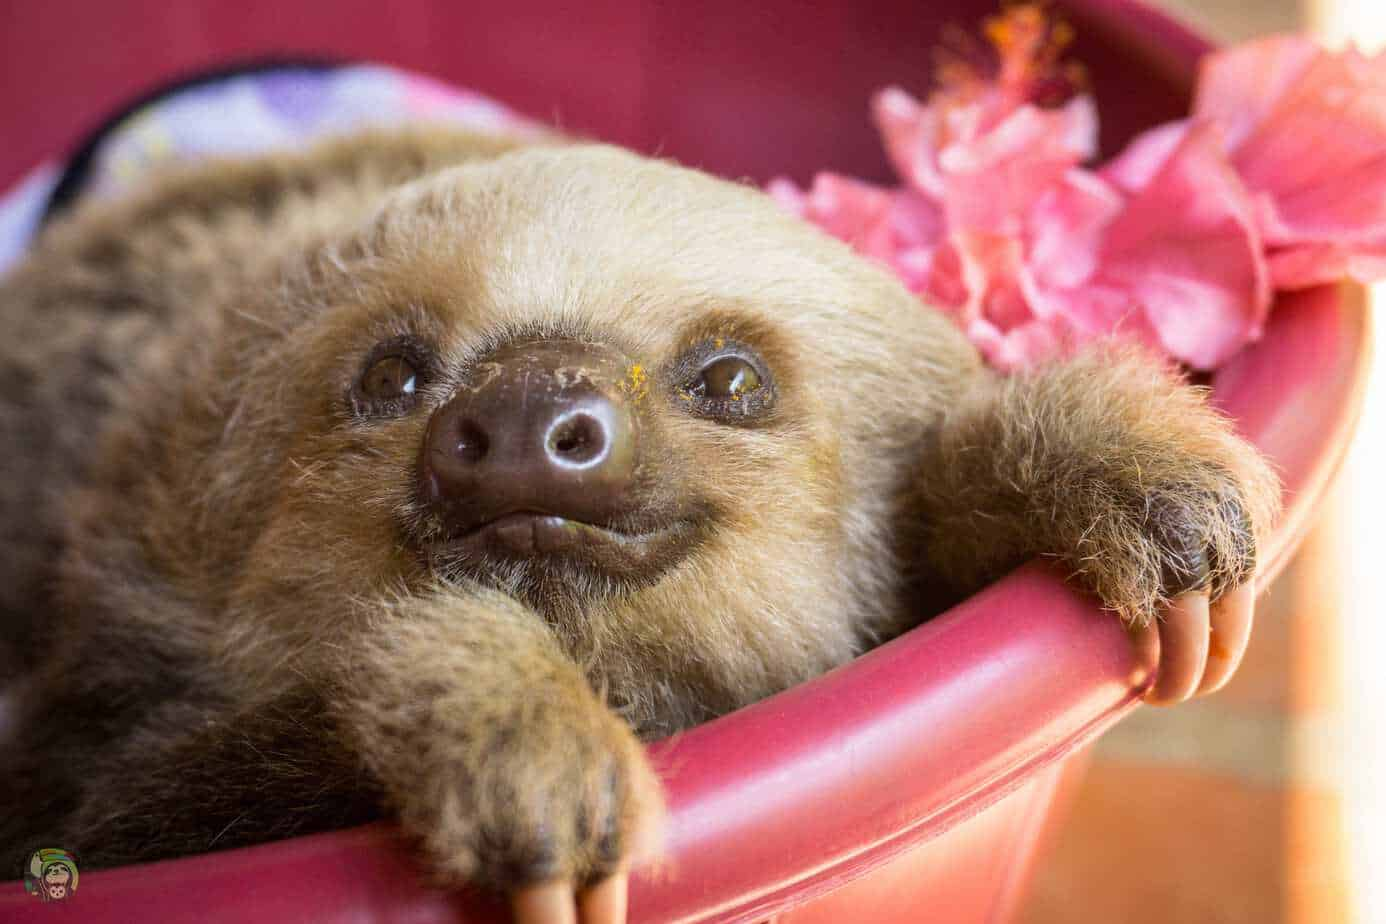 Anise, a two-fingered sloth at Toucan Rescue Ranch in Costa Rica.